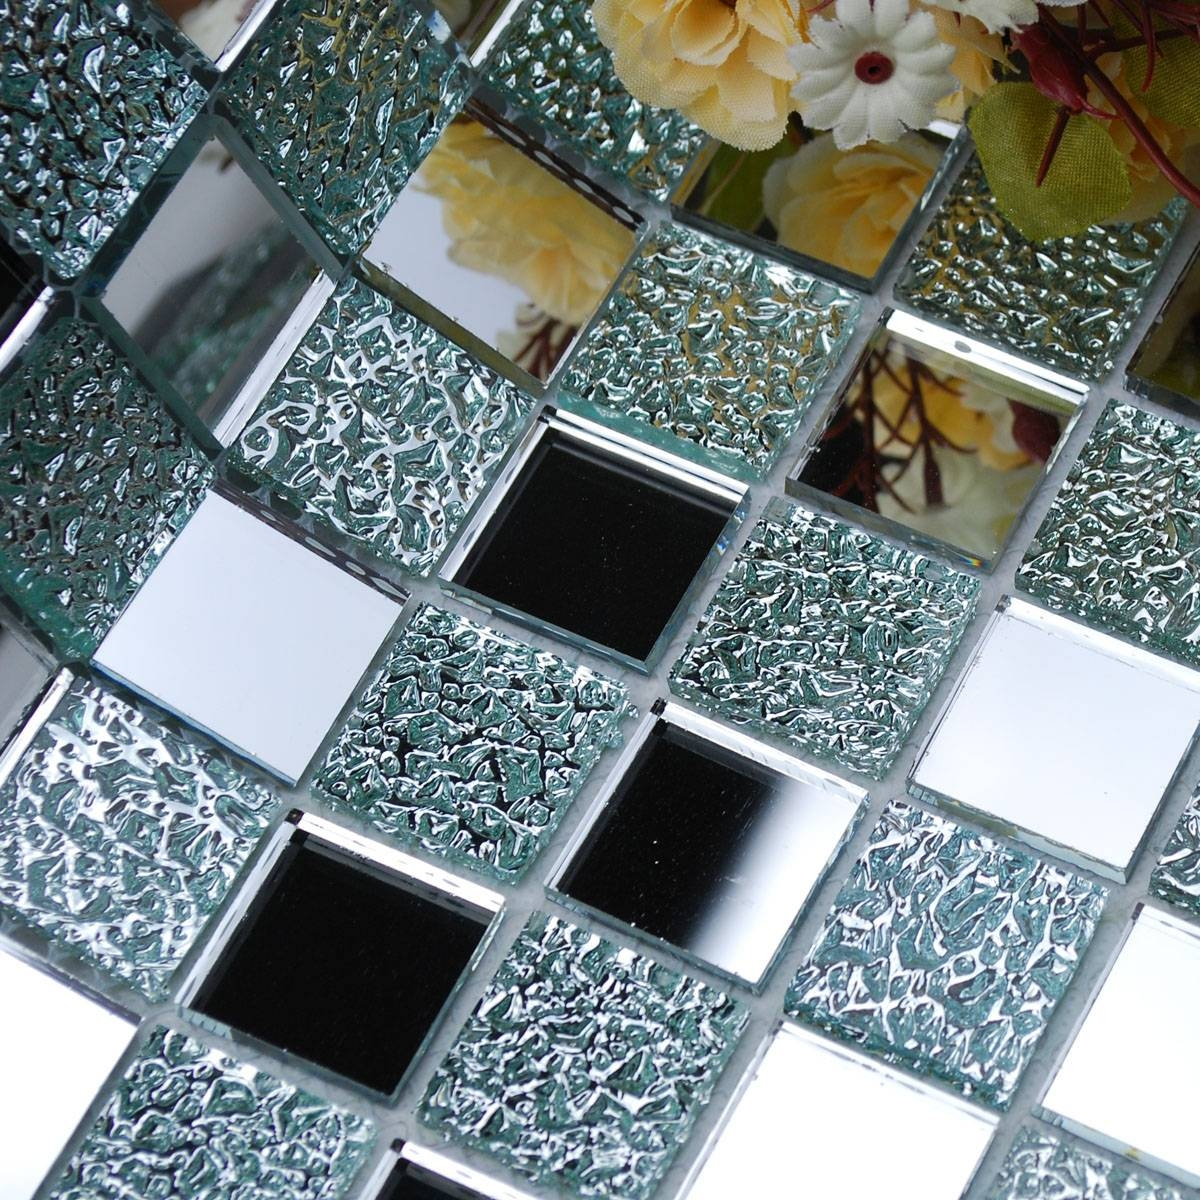 Wholesale Mirror Tile Squares Blue Bathroom Mirrored Wall Tile for Mosaic Wall Mirrors (Image 25 of 25)